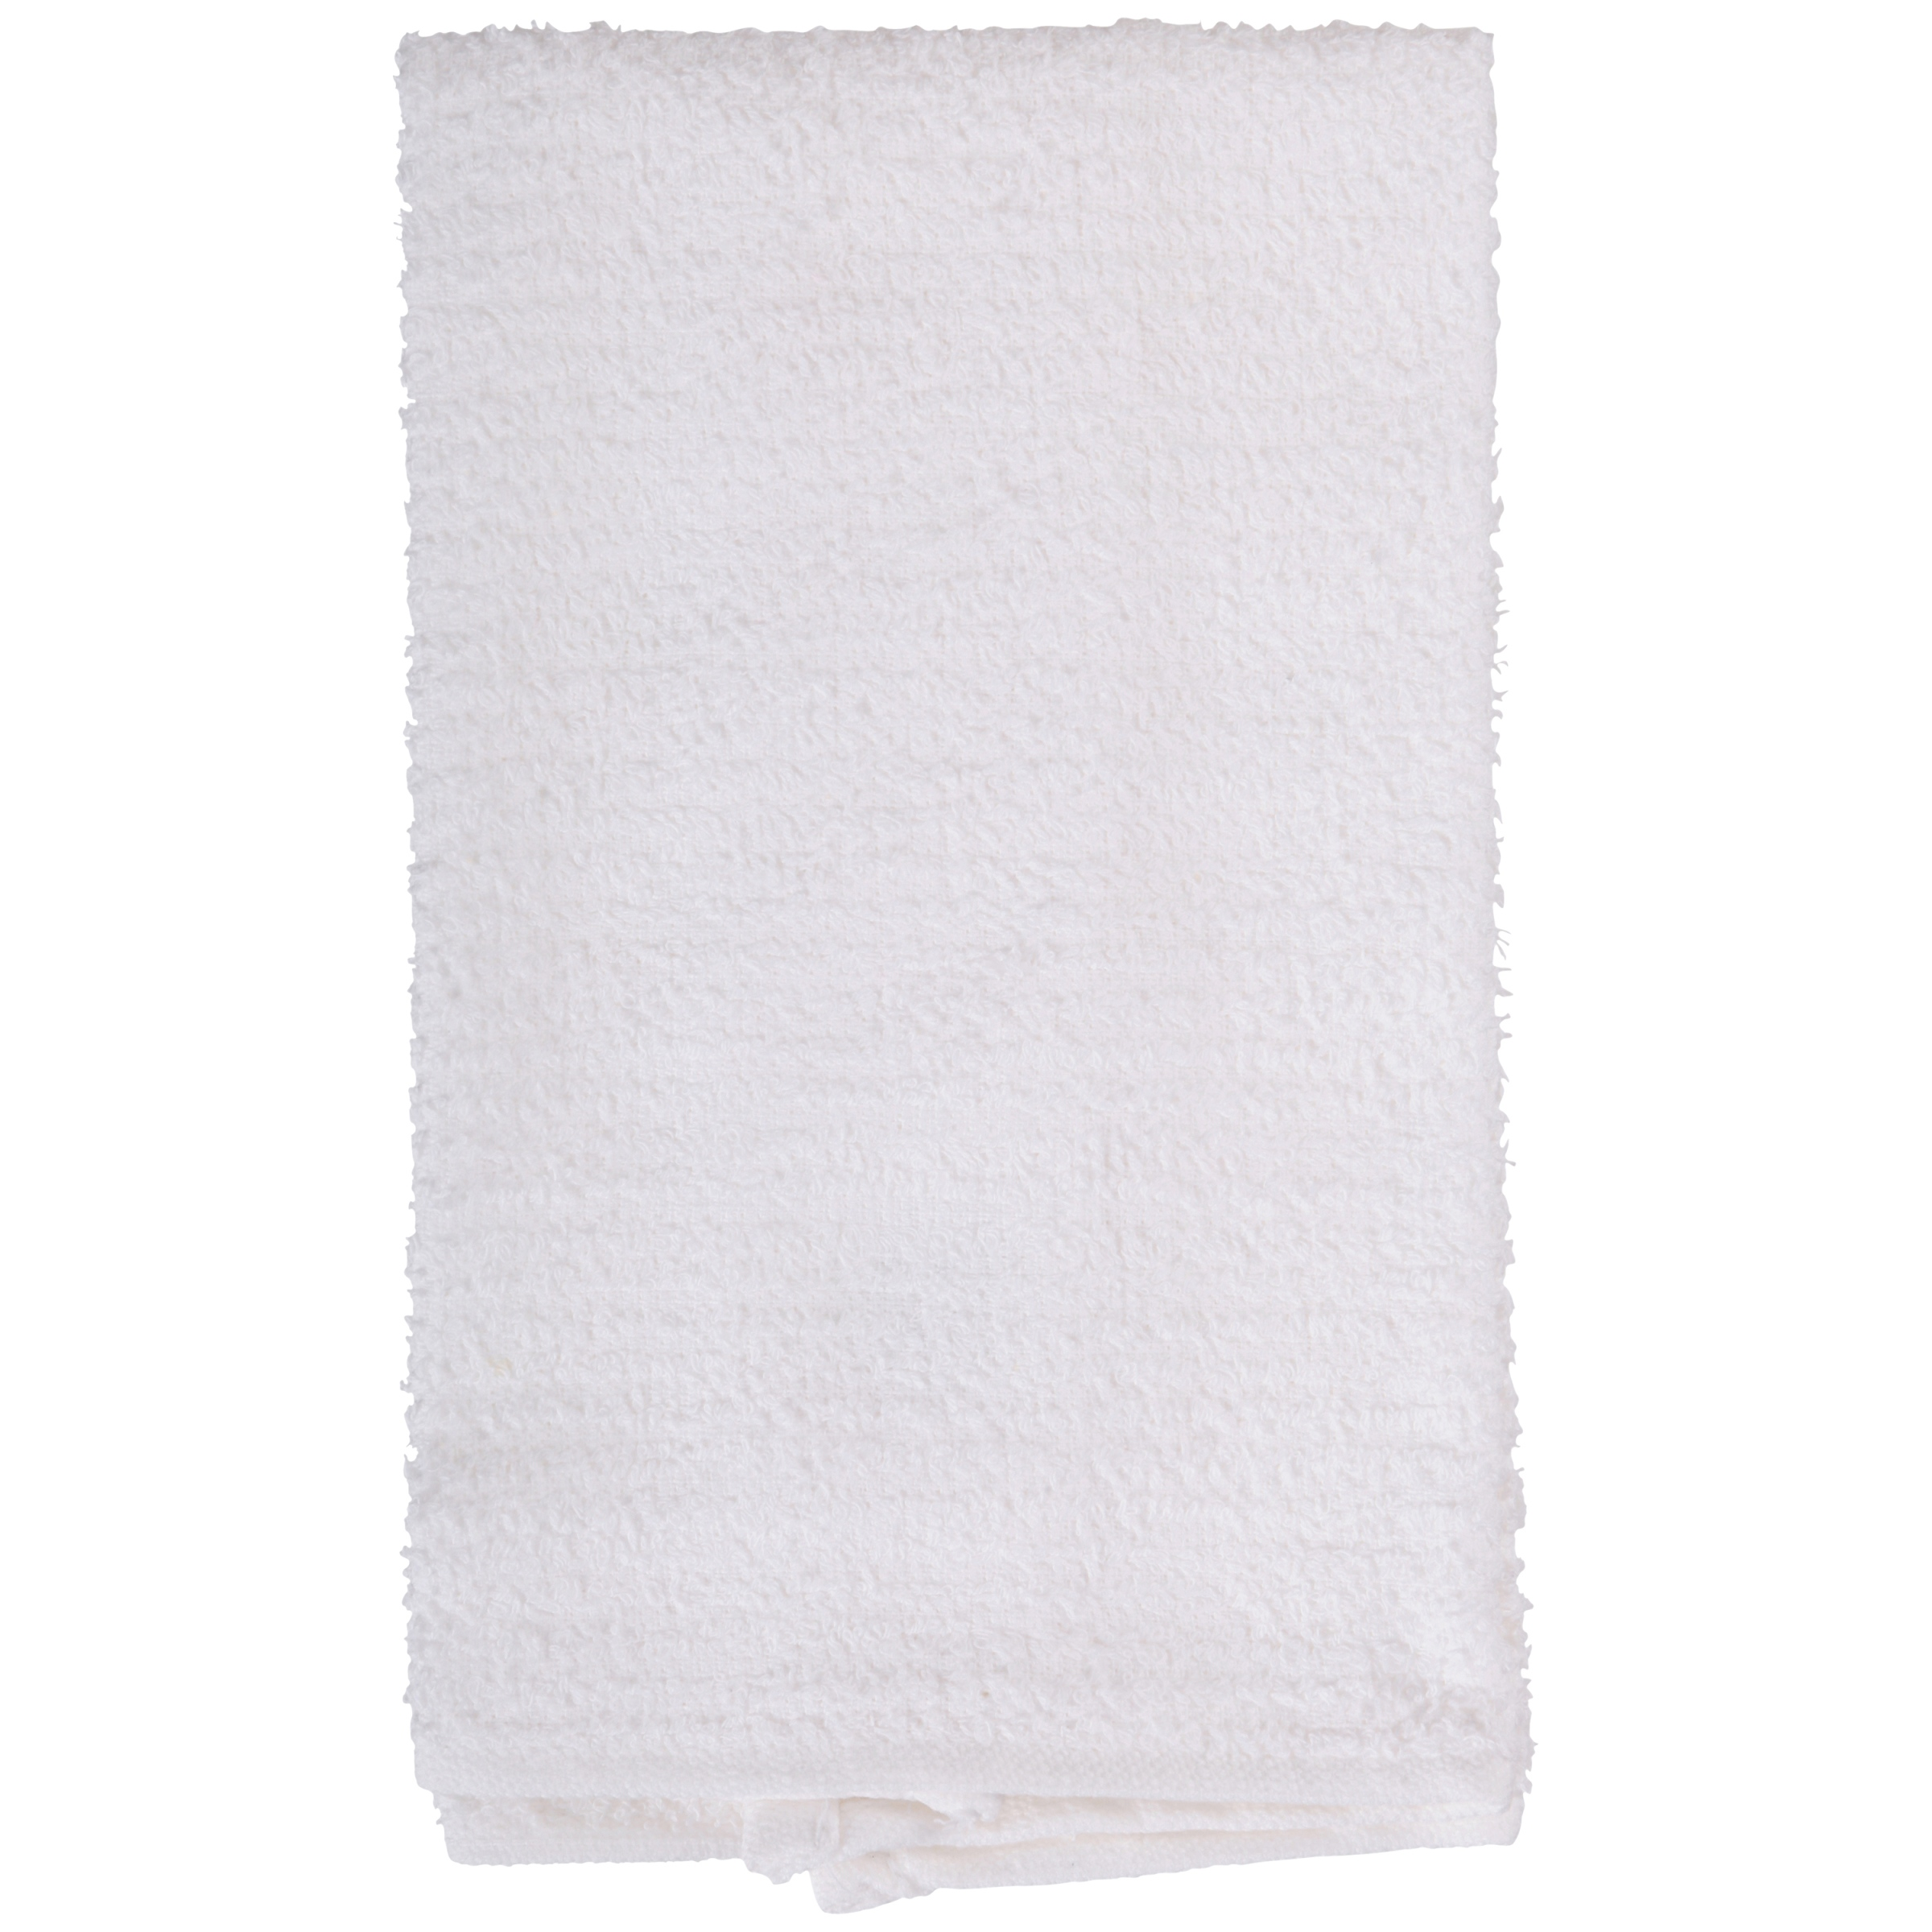 Gourmet Pro Ribbed Bar Mop Kitchen Towels 3 ct Pack by Domay Sales, Inc.